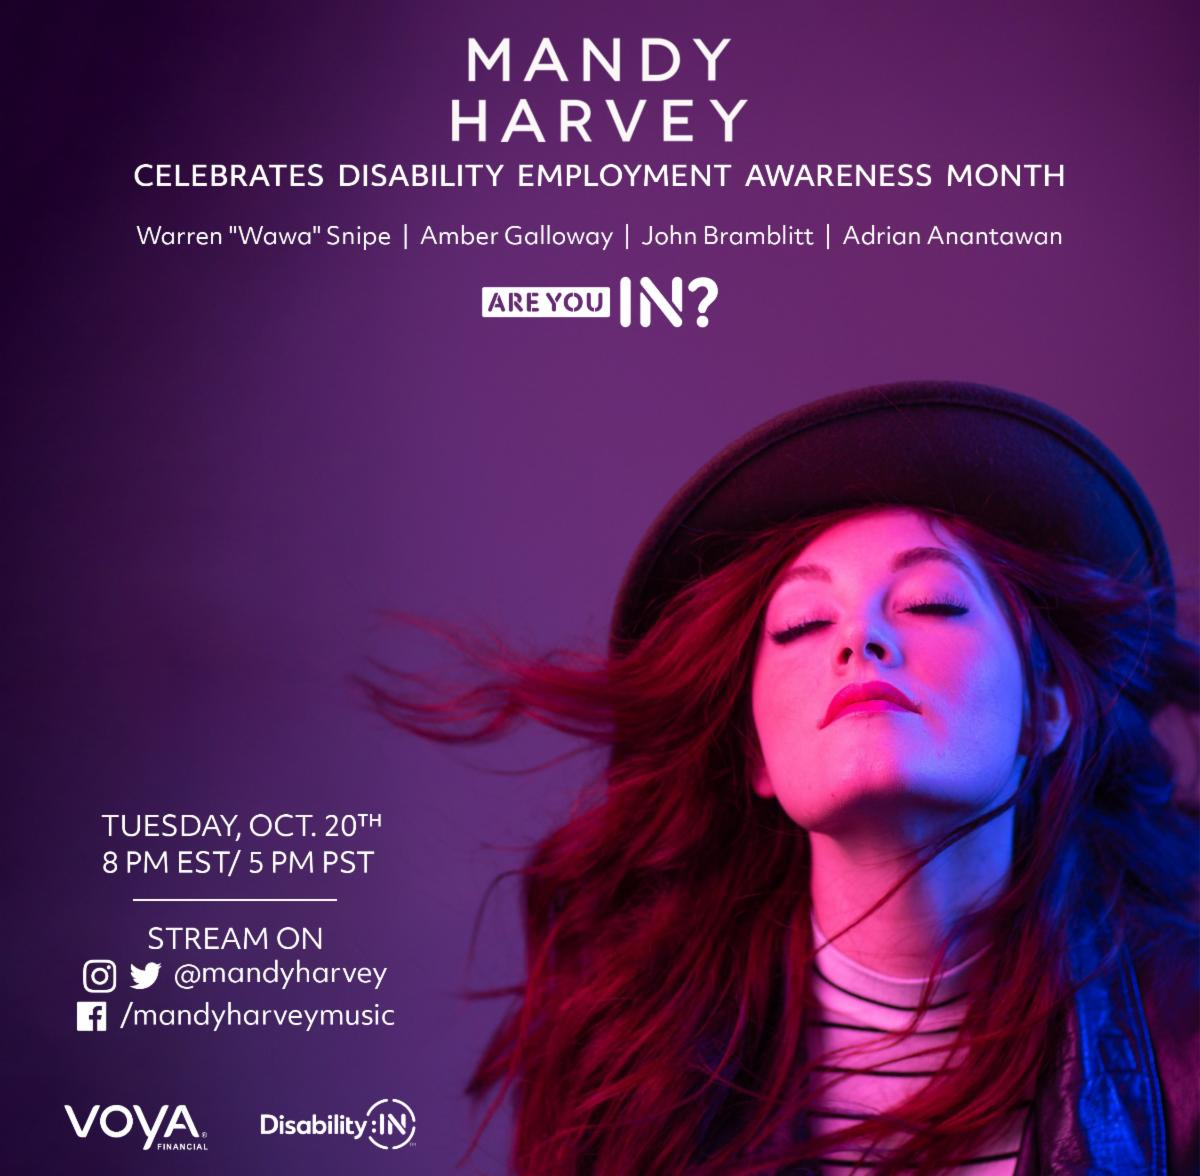 "Mandy Harvey celebrates disability employment awareness month. Also Featuring: Warren ""Wawa"" Snipe, Amber Galloway, John Bramblitt & Adrian Anantawan. Tuesday, Oct. 20th at 8 pm EST / 5 pm PST. Stream on Instagram & Twitter @mandyharvey or Facebook.com/man"